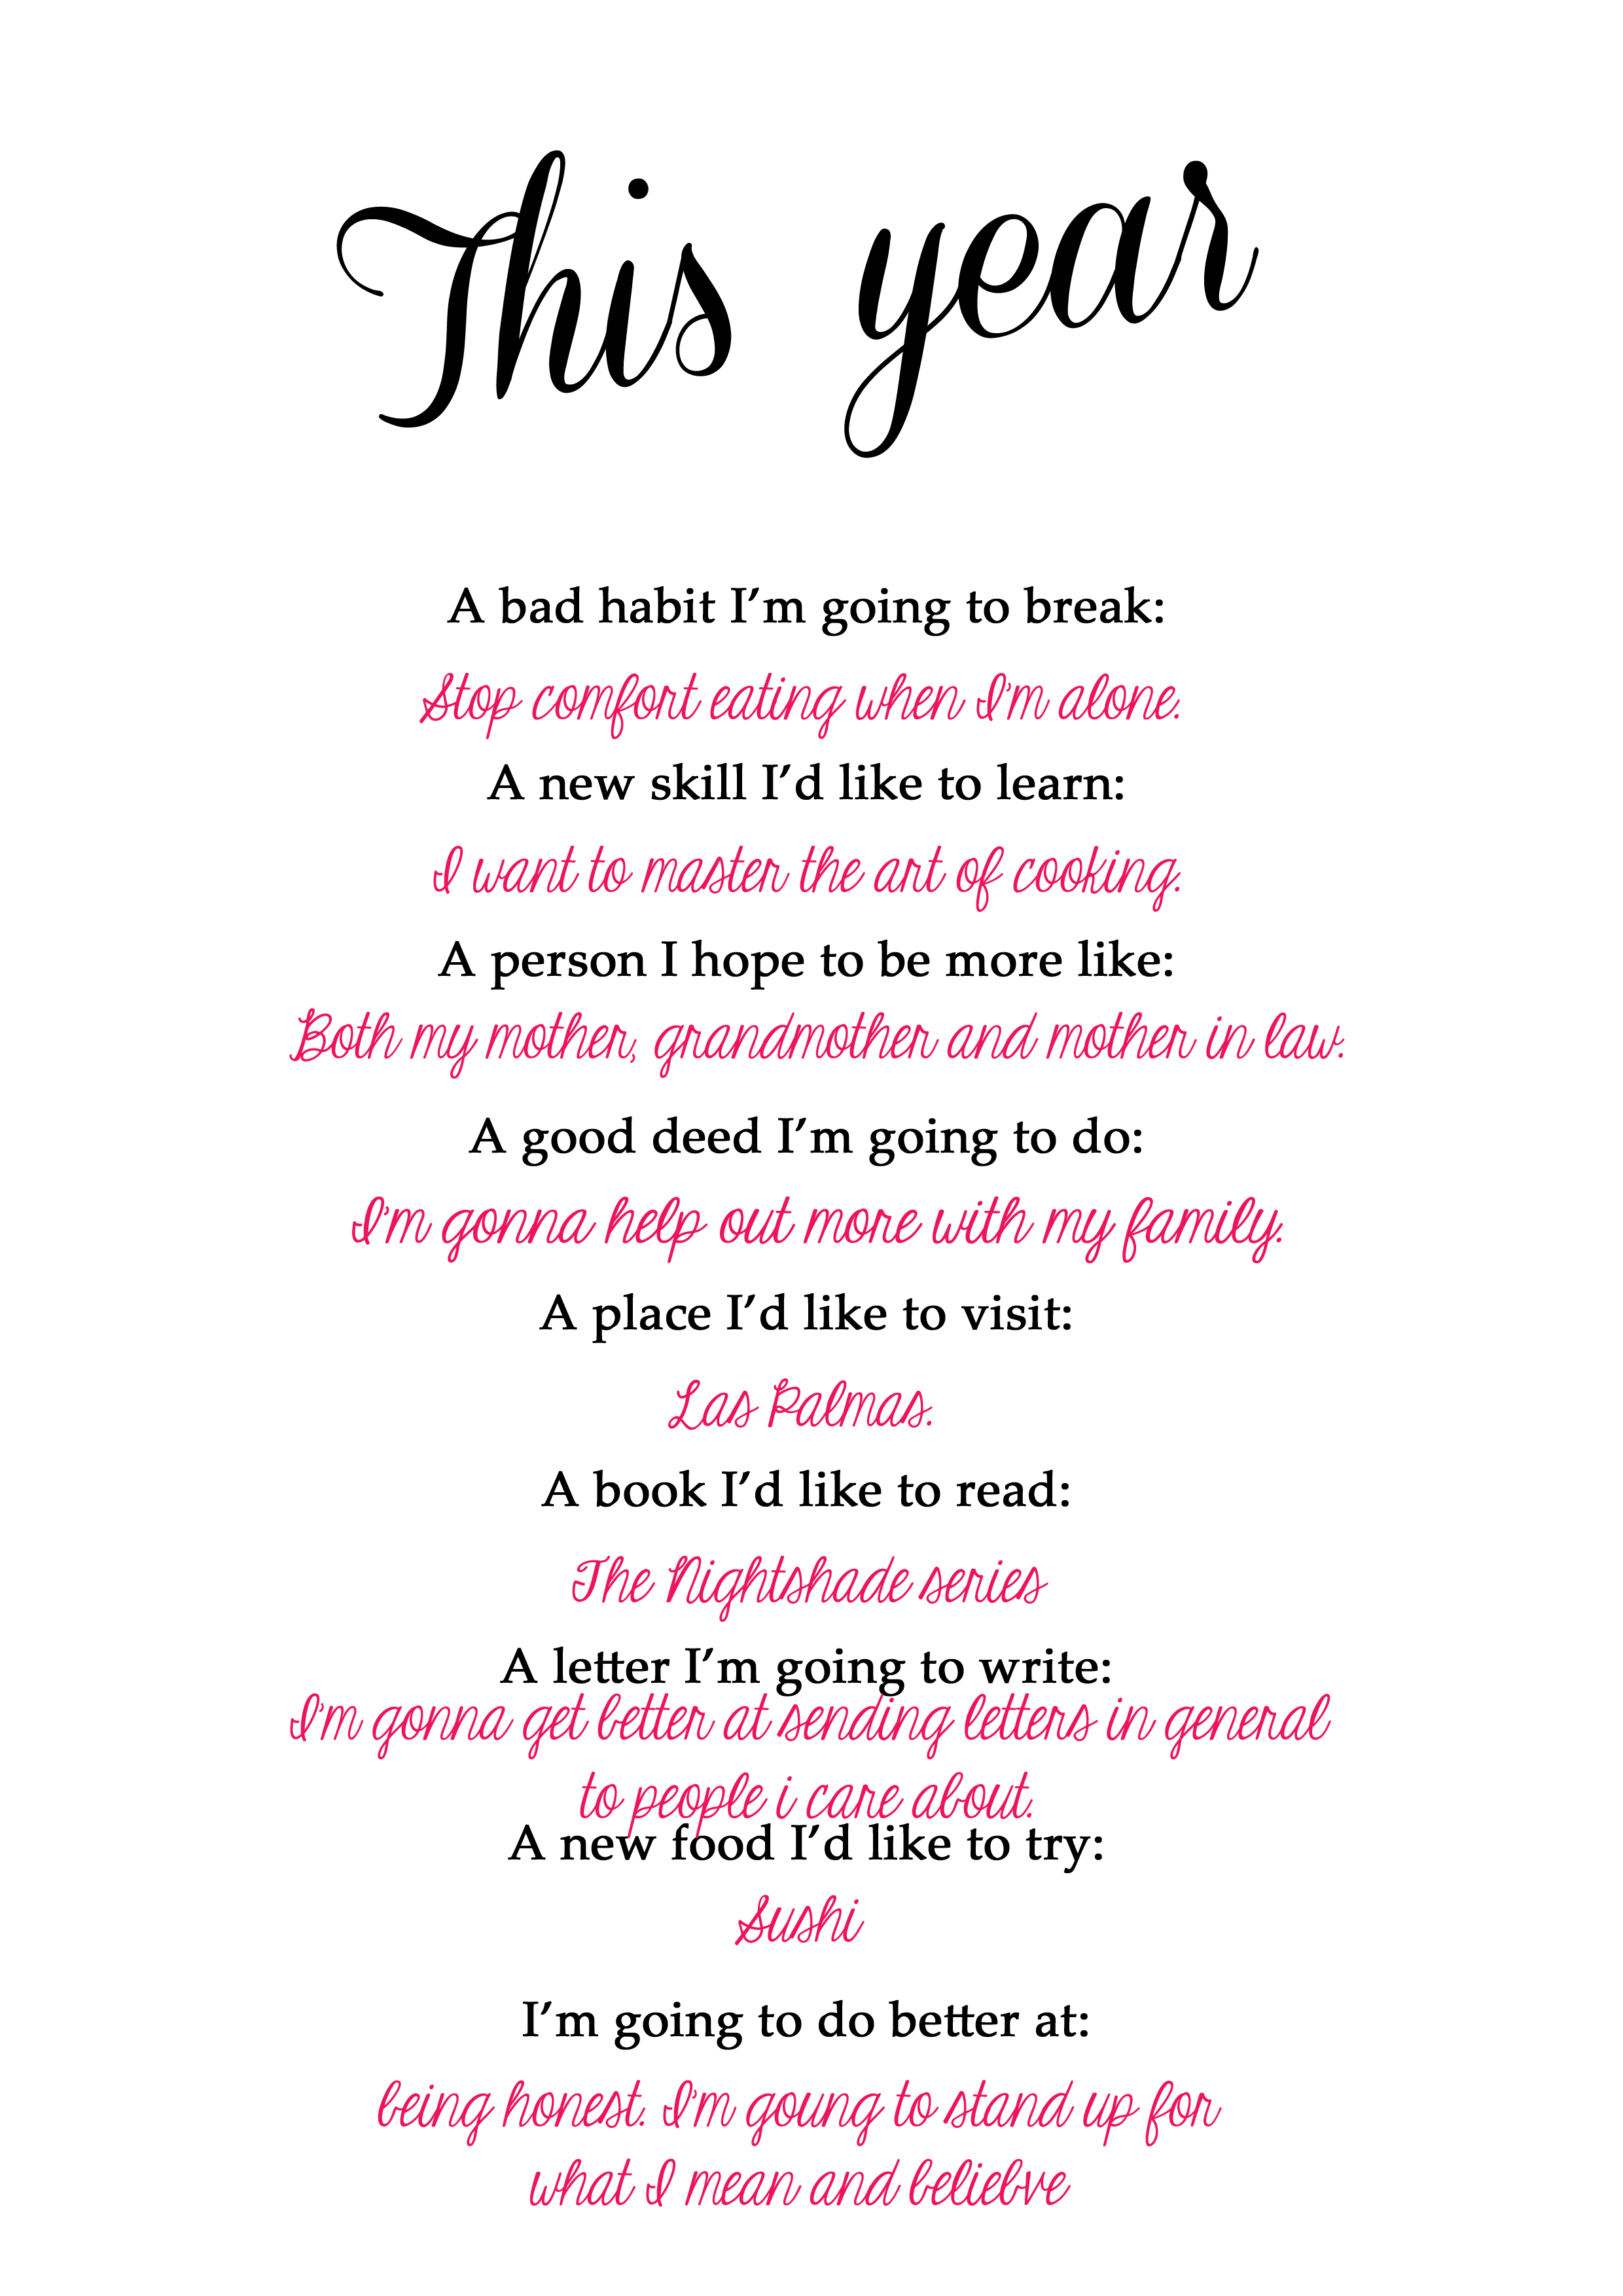 Free Printable About Resolutions For The New Year